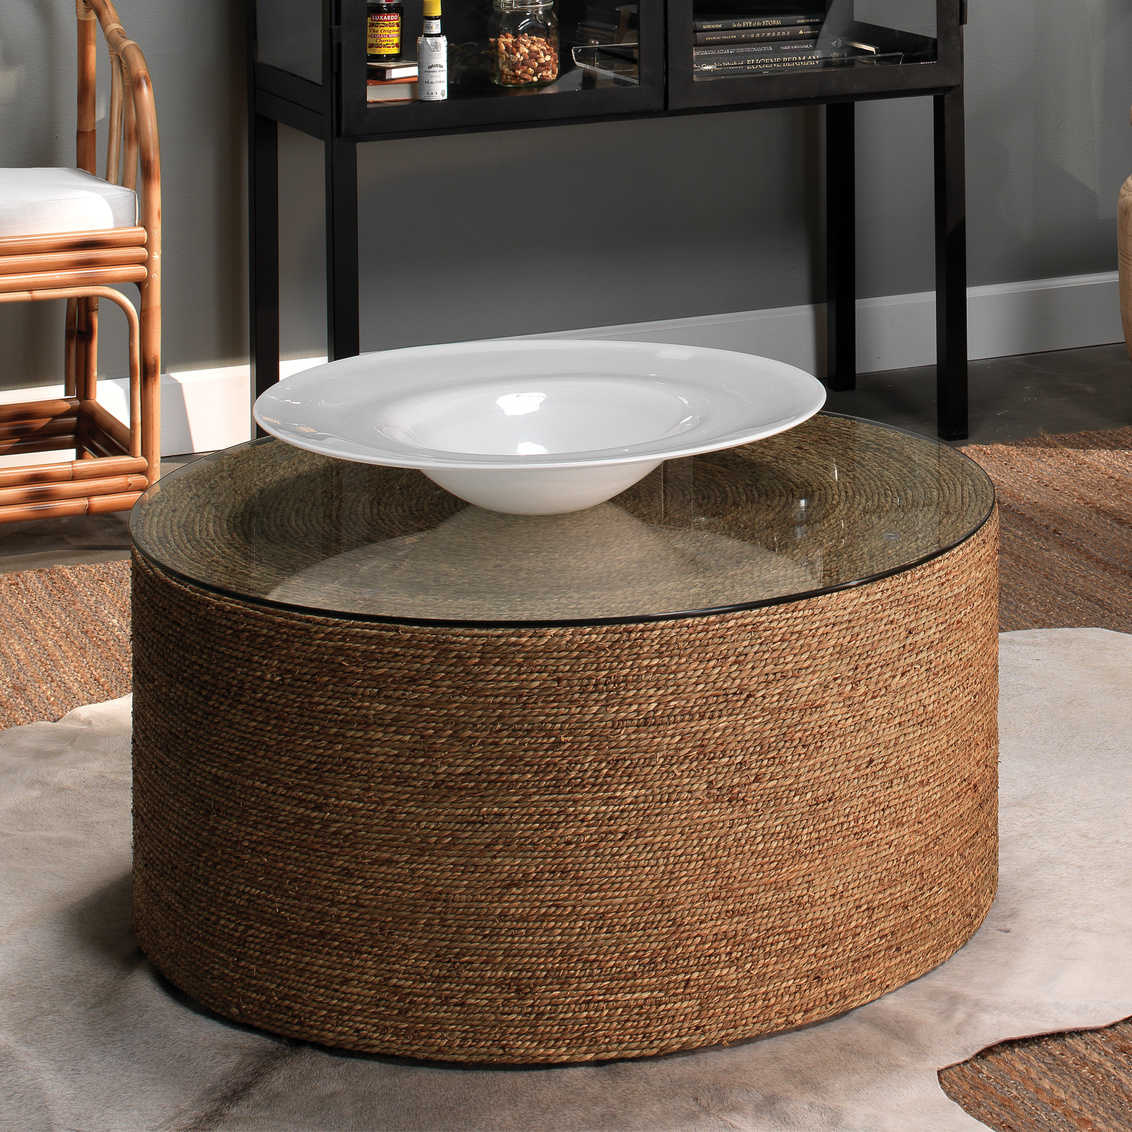 Jamie Young Company Harbor Natural Seagrass 36 Wide Round Coffee Table Jyc20harbctna [ 1132 x 1132 Pixel ]